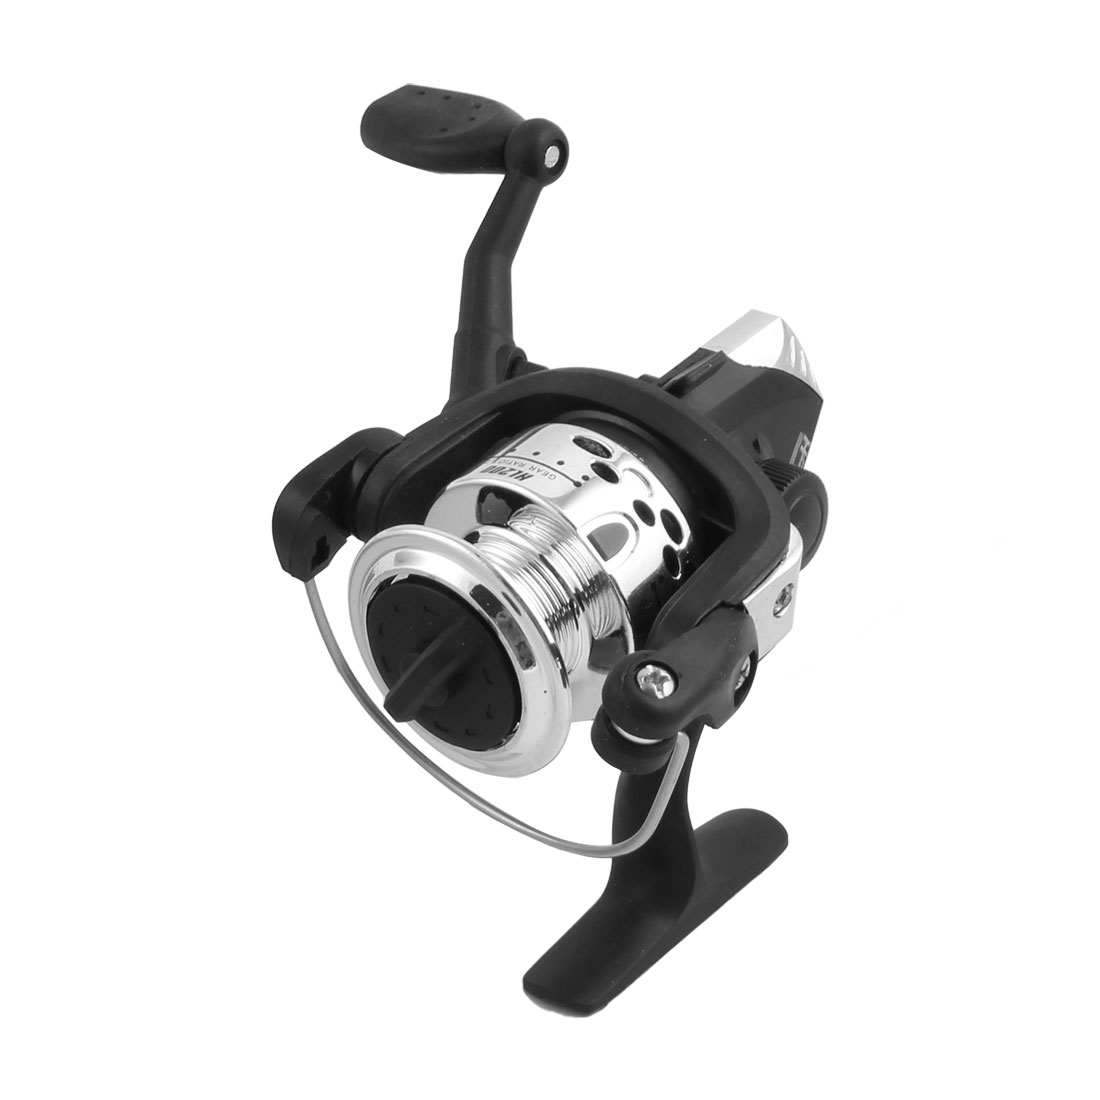 Gera Ratio 5.2:1 Black Silver Tone Plastic Changeable Handle Fishing Spinning Reel